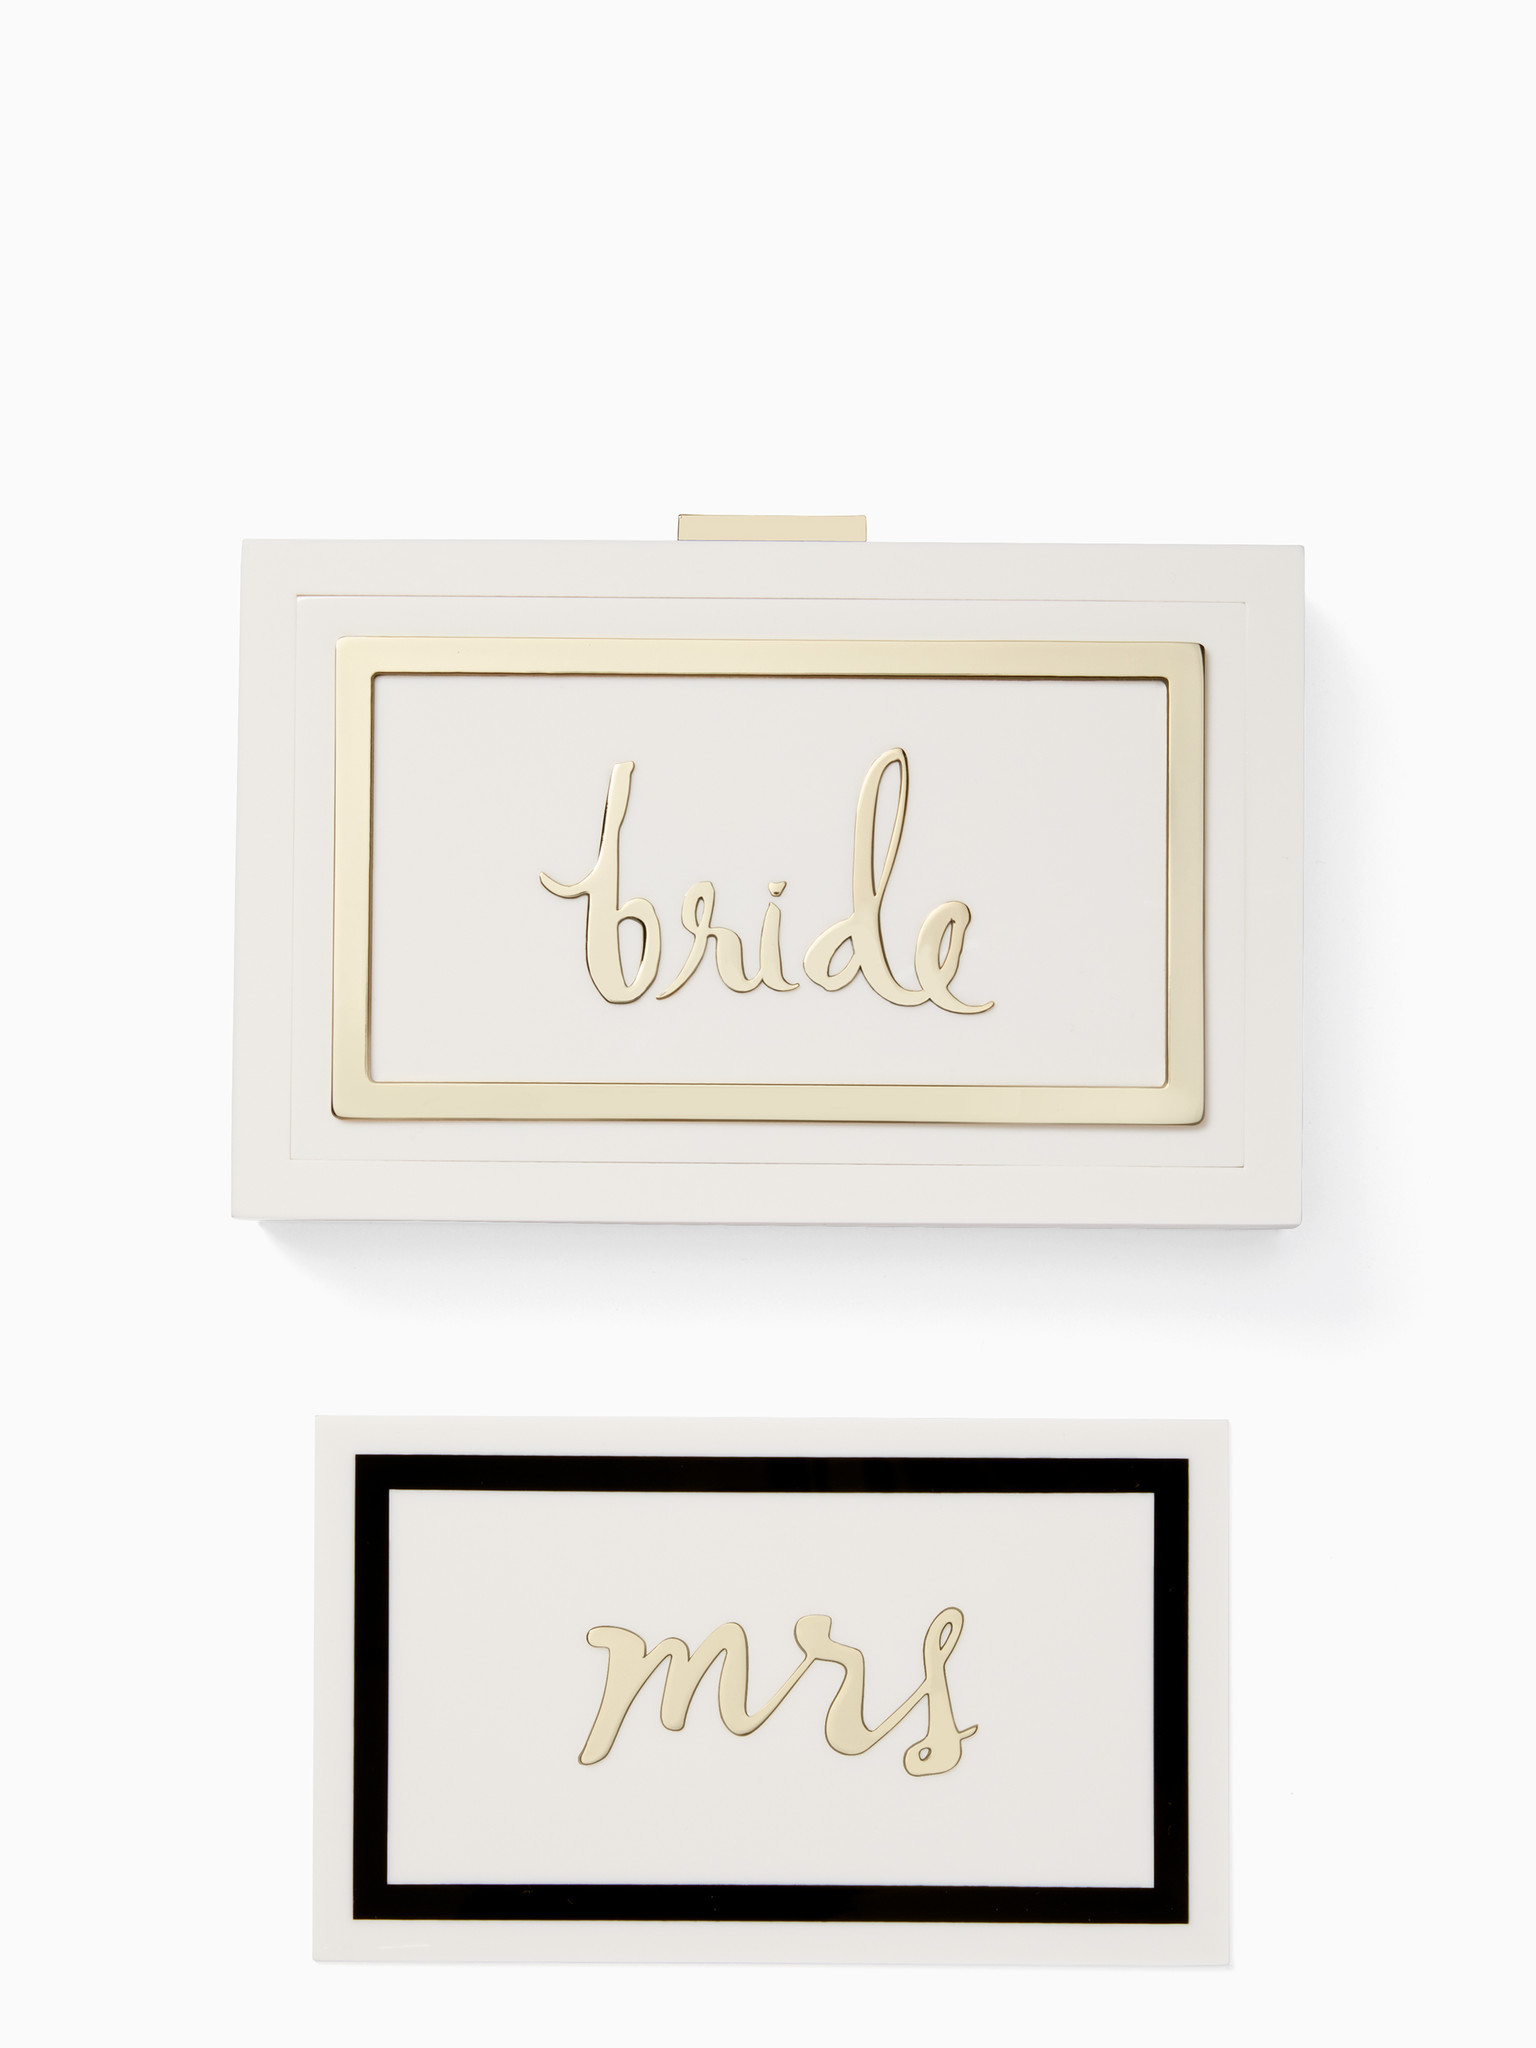 Kate Spade New York Add a quirky touch with the Make It Mine Rylie Bridal Set from Kate Spade New Yo